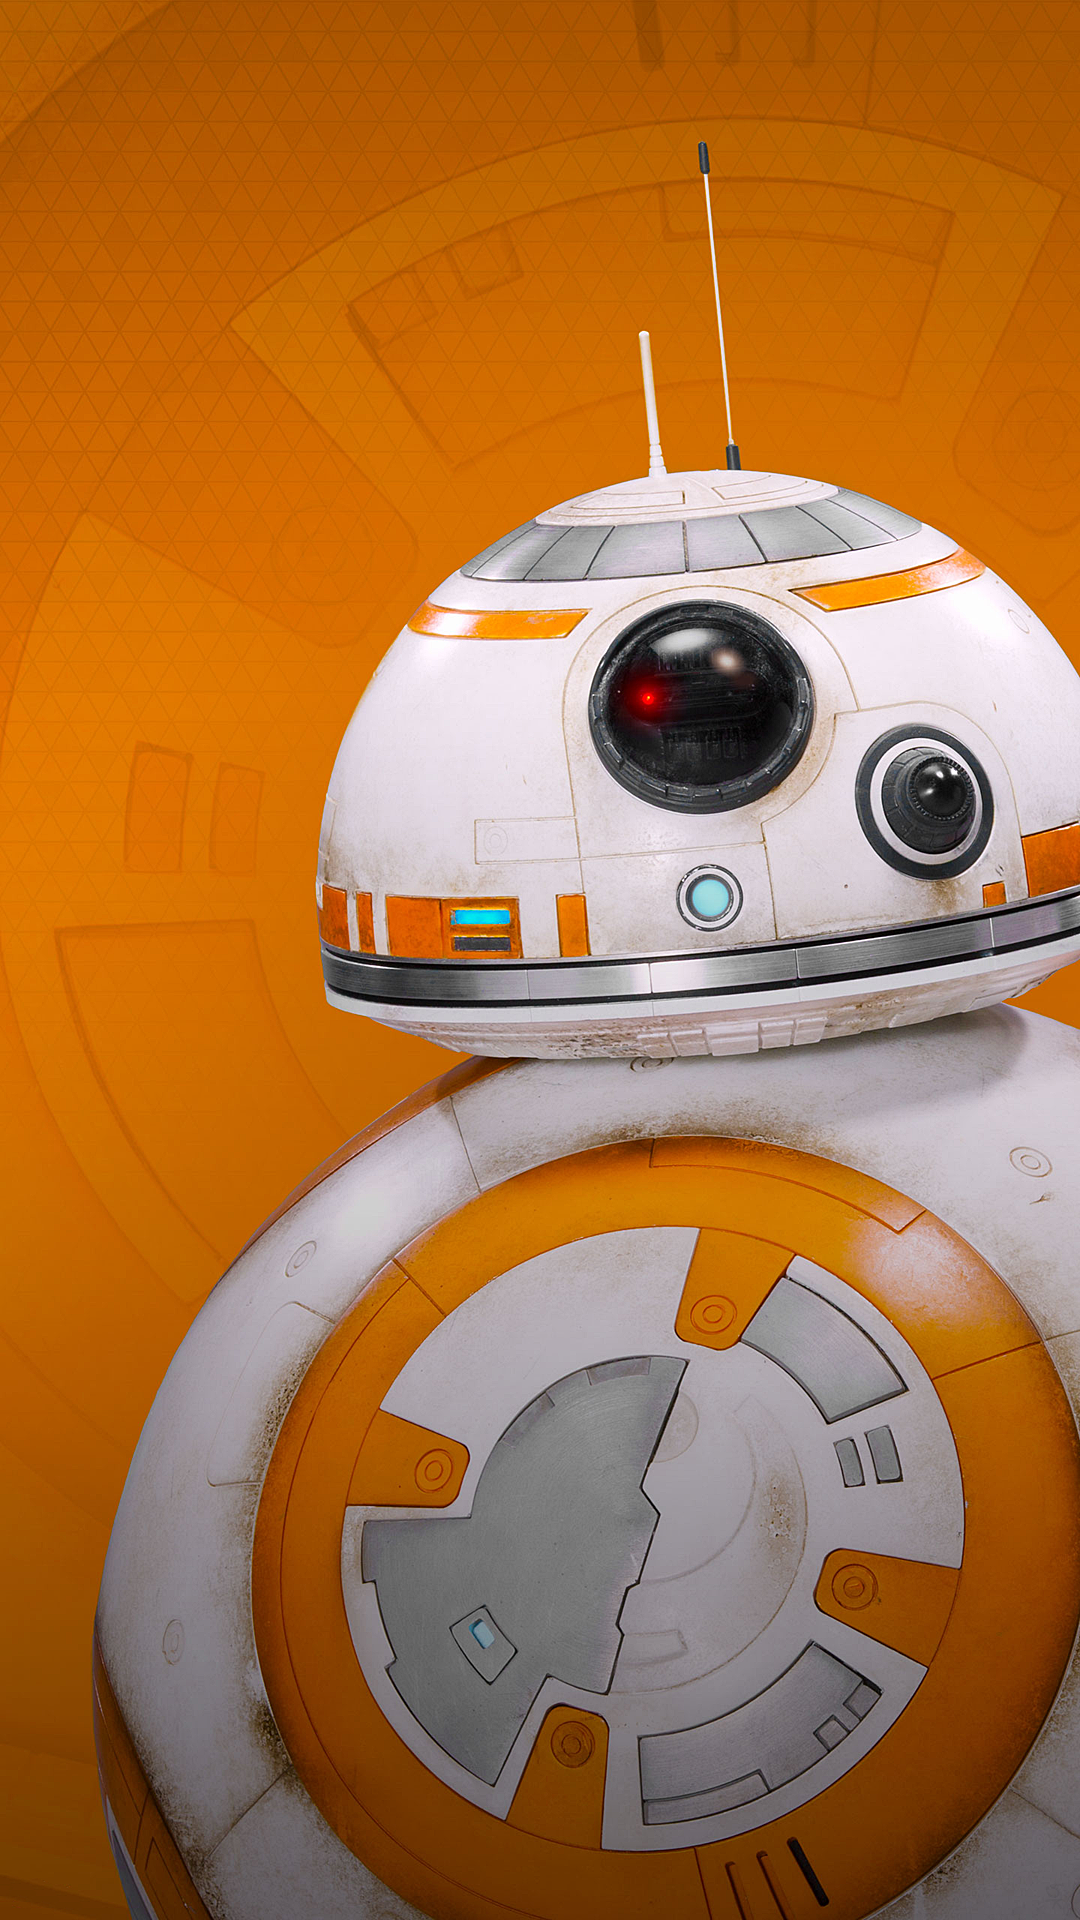 Bb 8 Droid Iphone 6 Plus Wallpaper 1080x1920 Star Wars Wallpaper Star Wars Background Star Wars Bb8